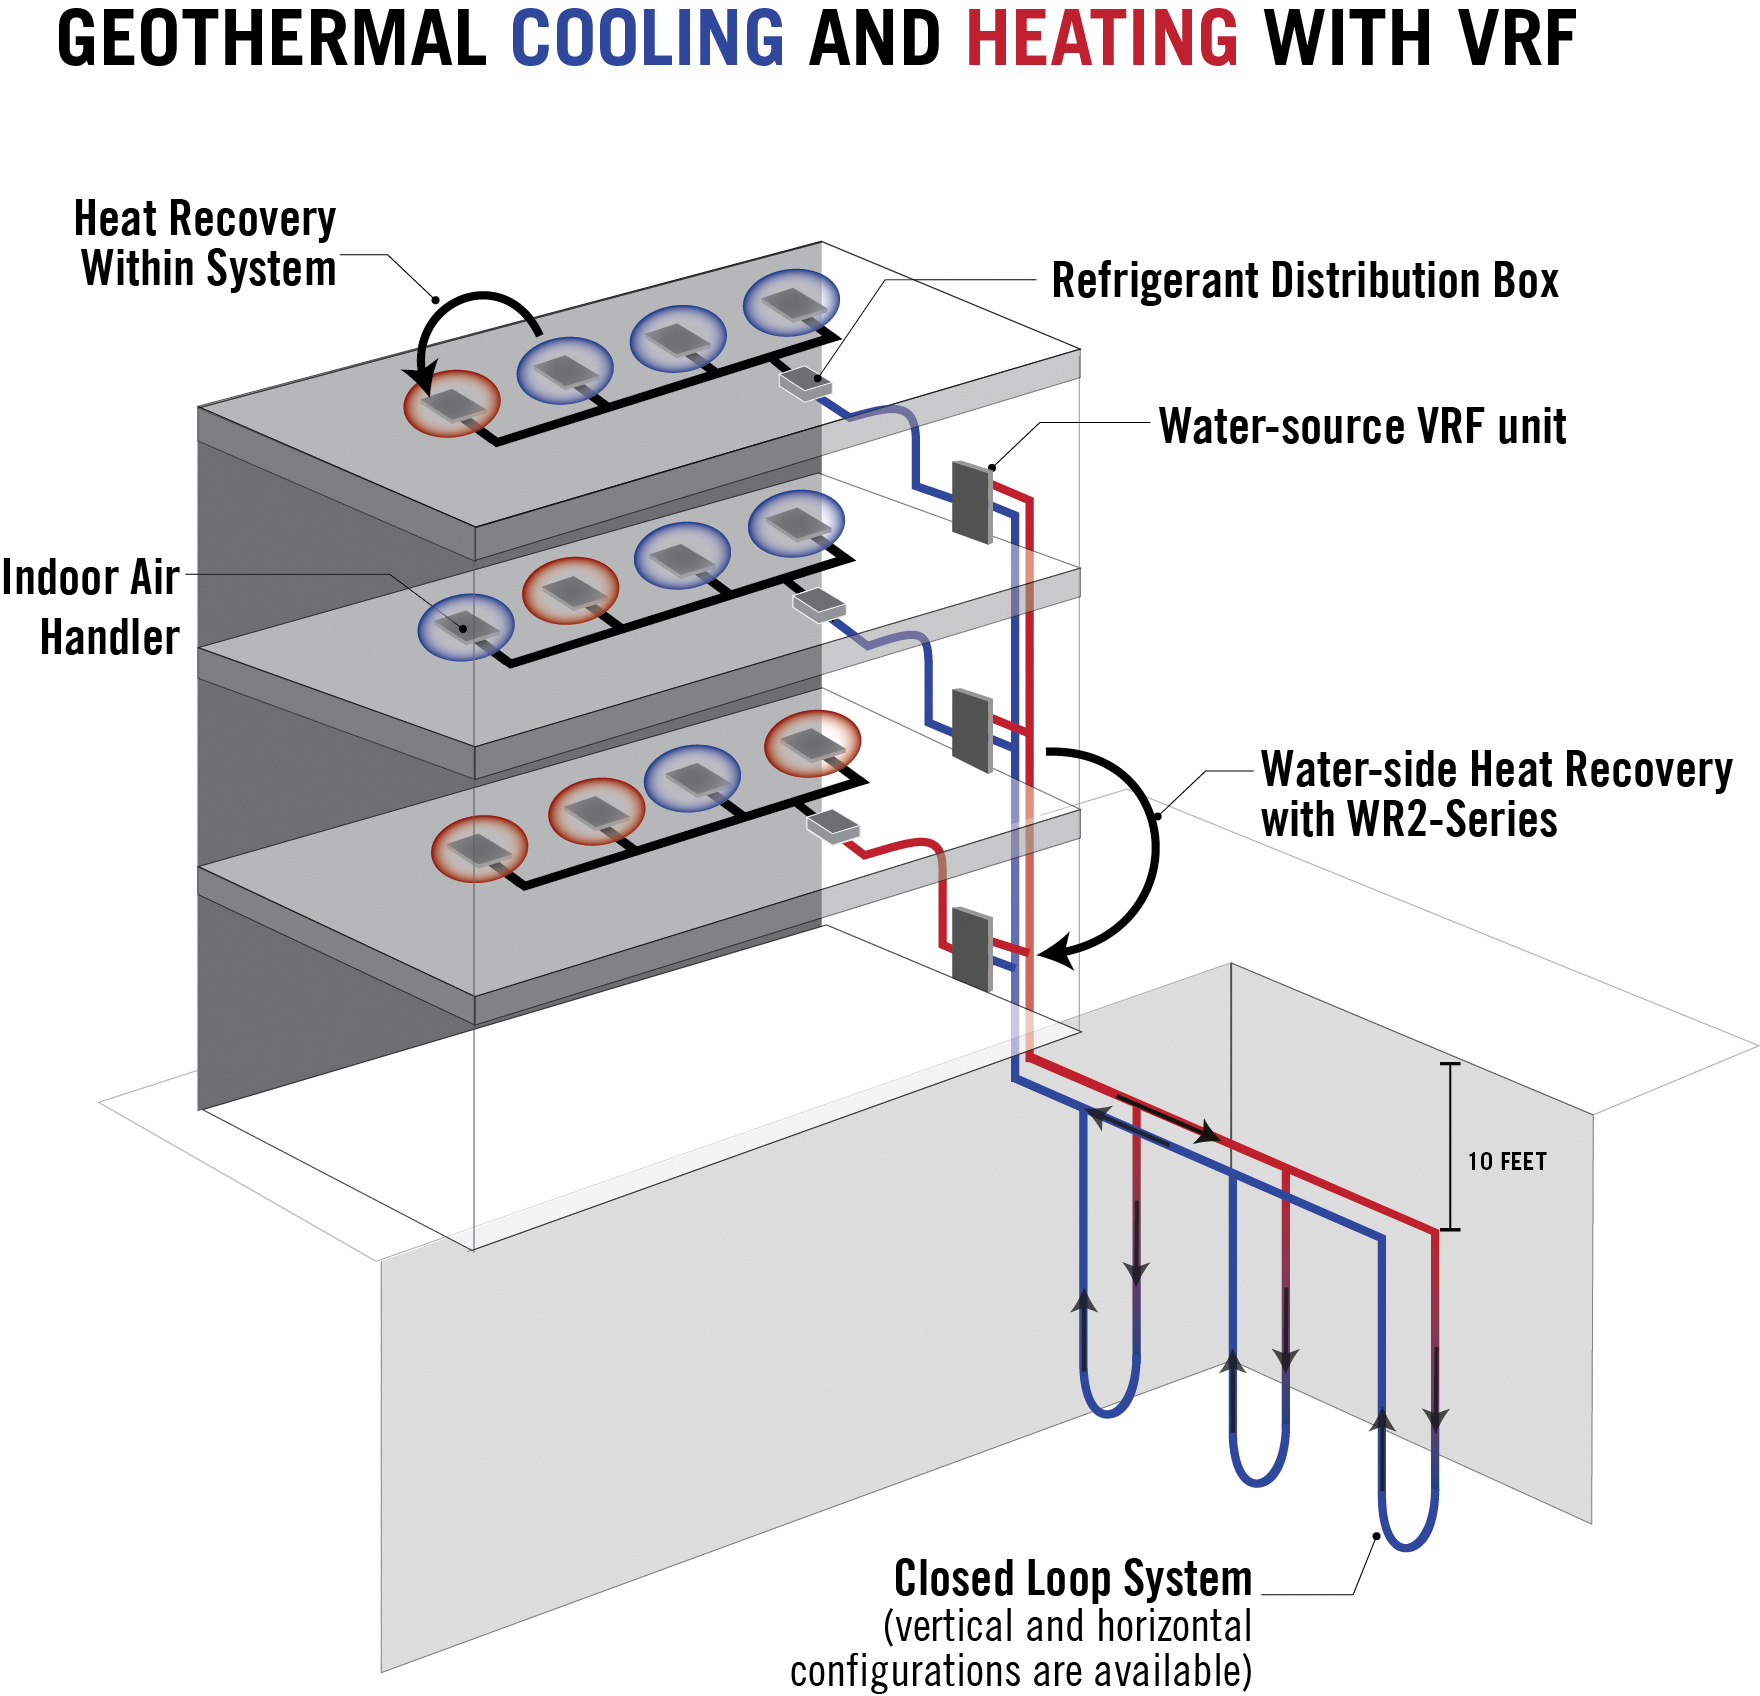 Radiant Ceiling Heat Wiring Schematic Summer Engineer Geothermal Graphic Mitsubishi Electric